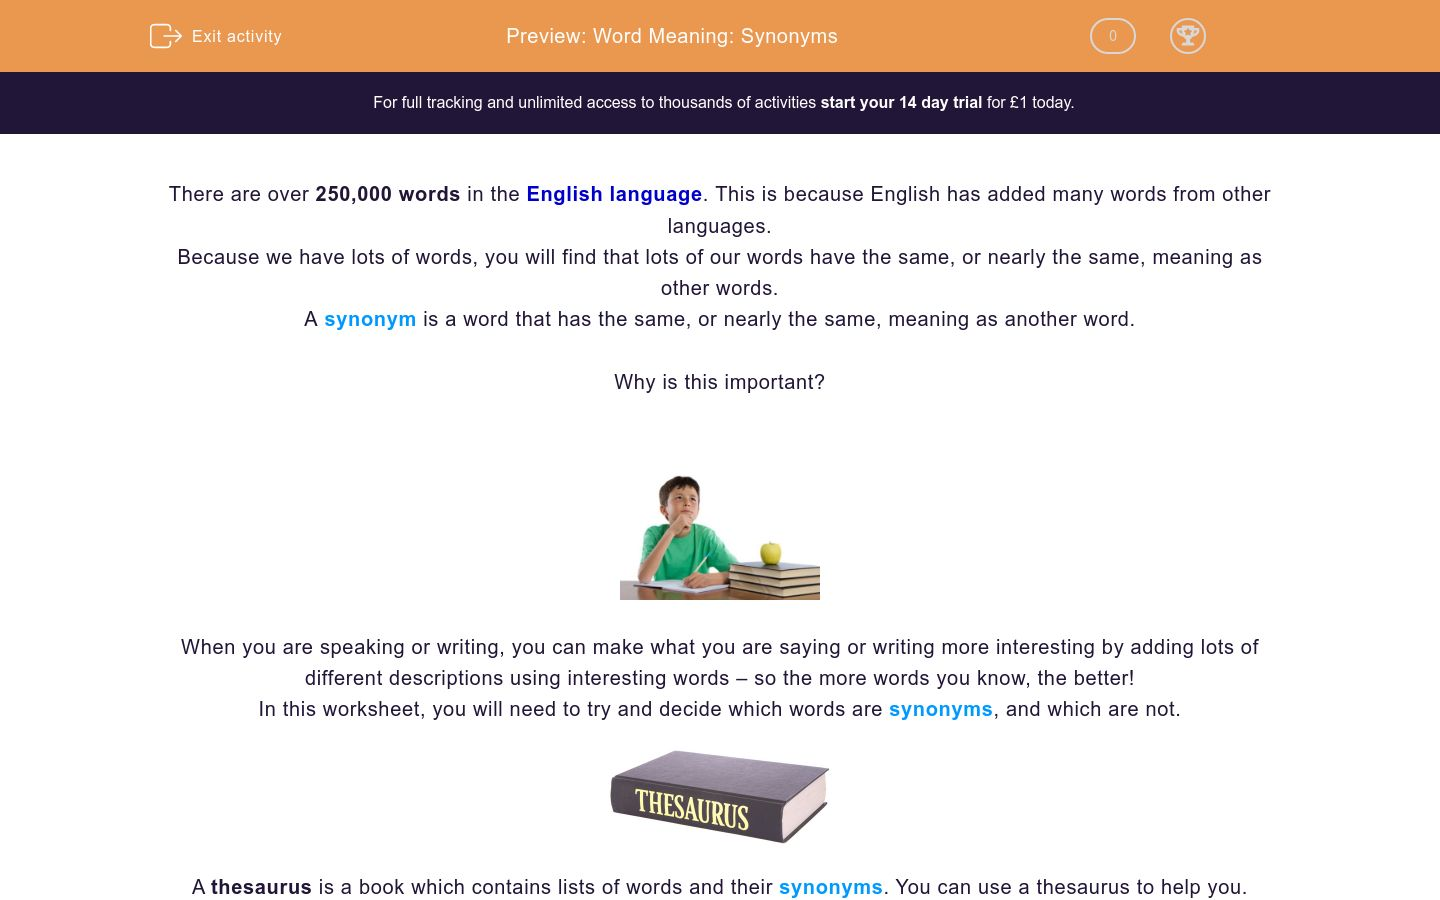 Word Meaning: Synonyms Worksheet - EdPlace